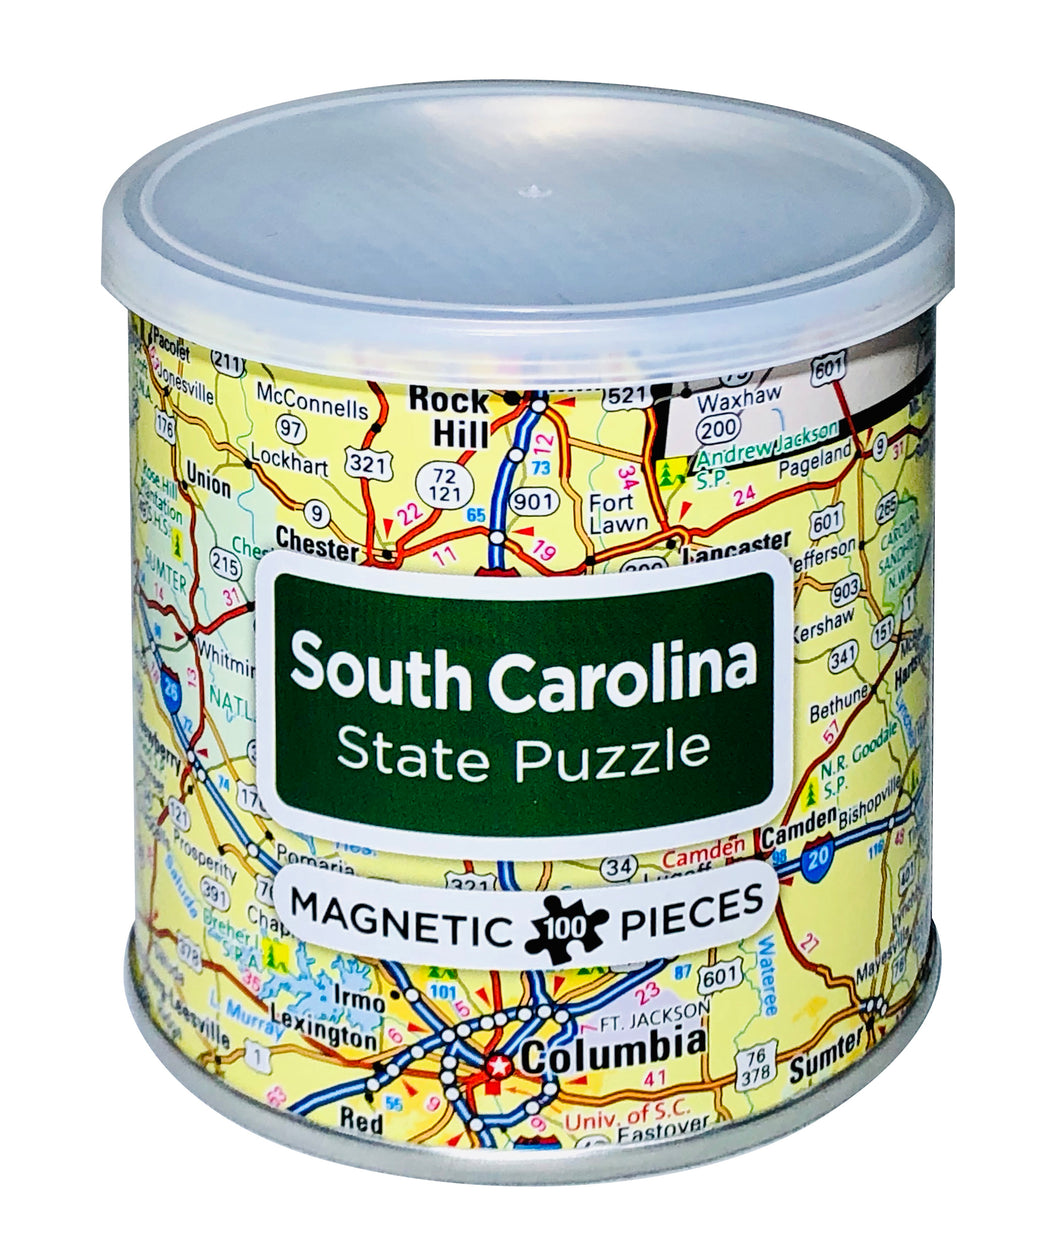 100 Piece Magnetic Puzzle - South Carolina